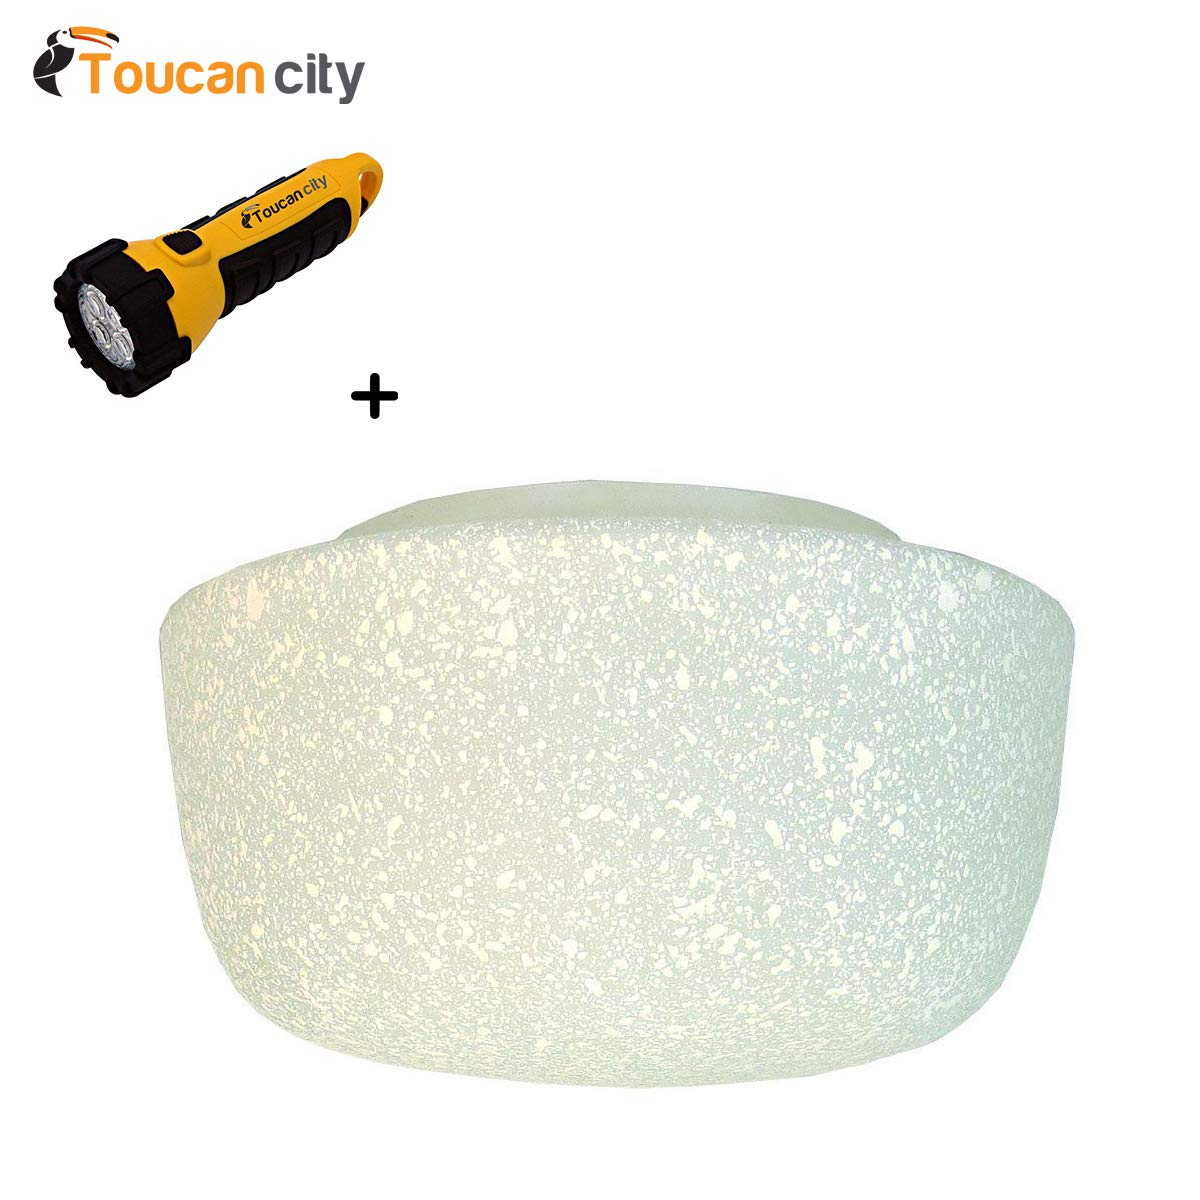 Toucan City LED Flashlight and Courtney Ceiling Fan Replacement Glass Globe 82392038823 by Toucan City